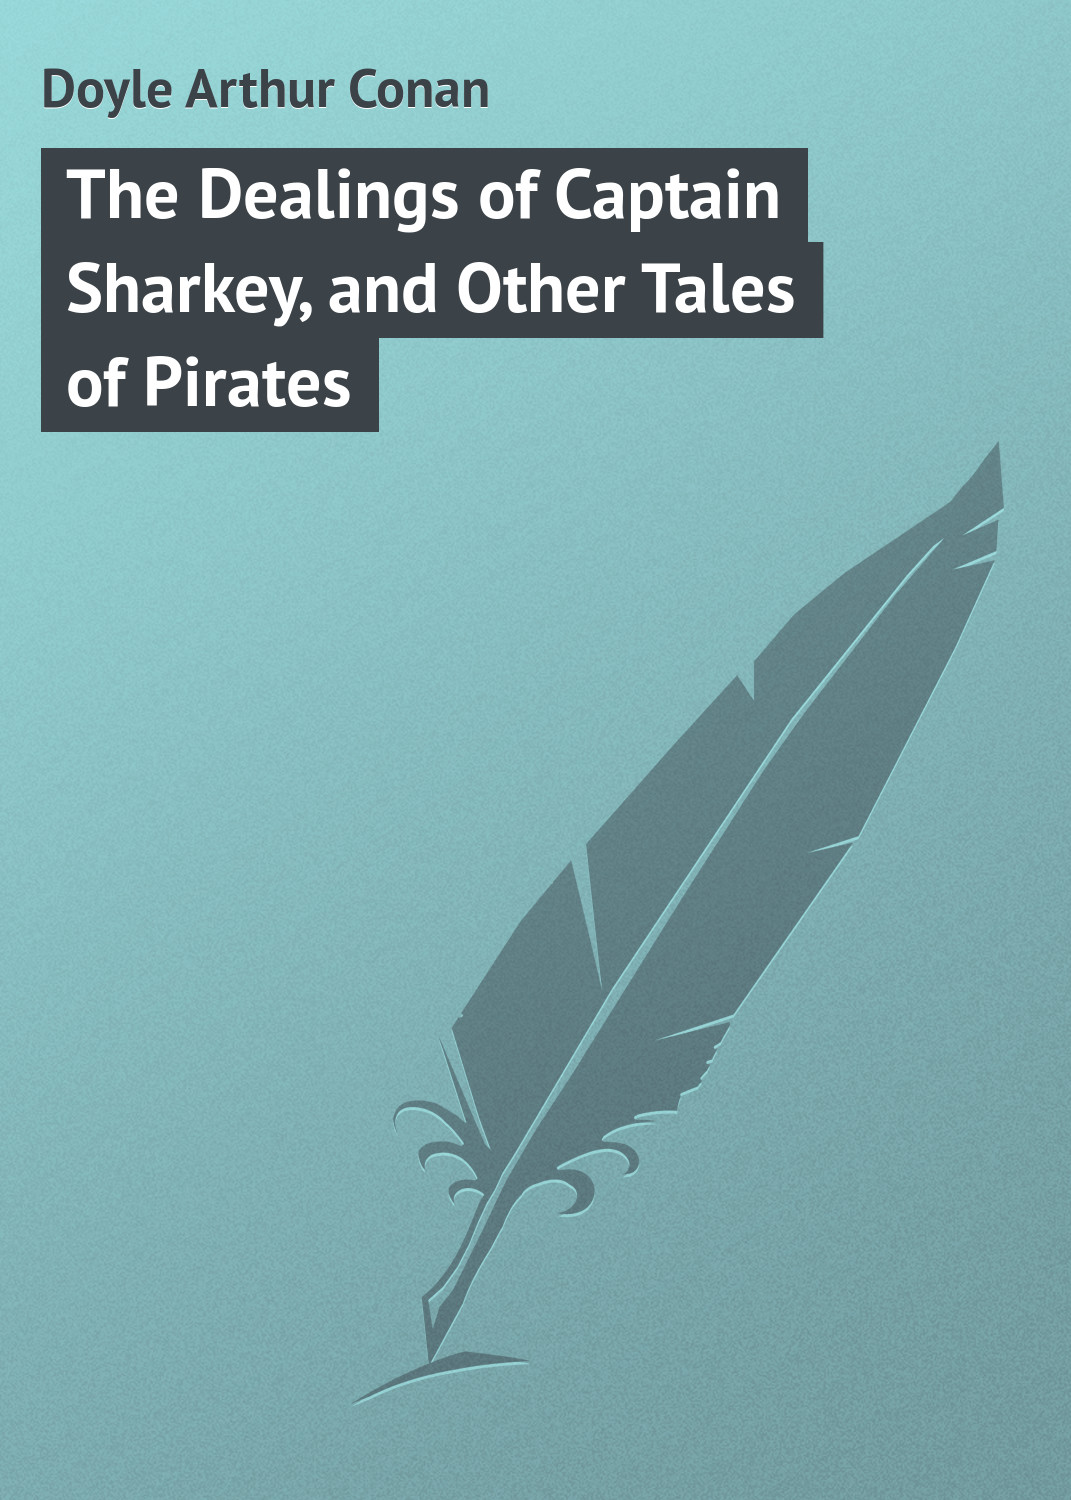 Doyle Arthur Conan The Dealings of Captain Sharkey, and Other Tales of Pirates arthur conan doyle tales of medical life isbn 978 5 521 07160 9